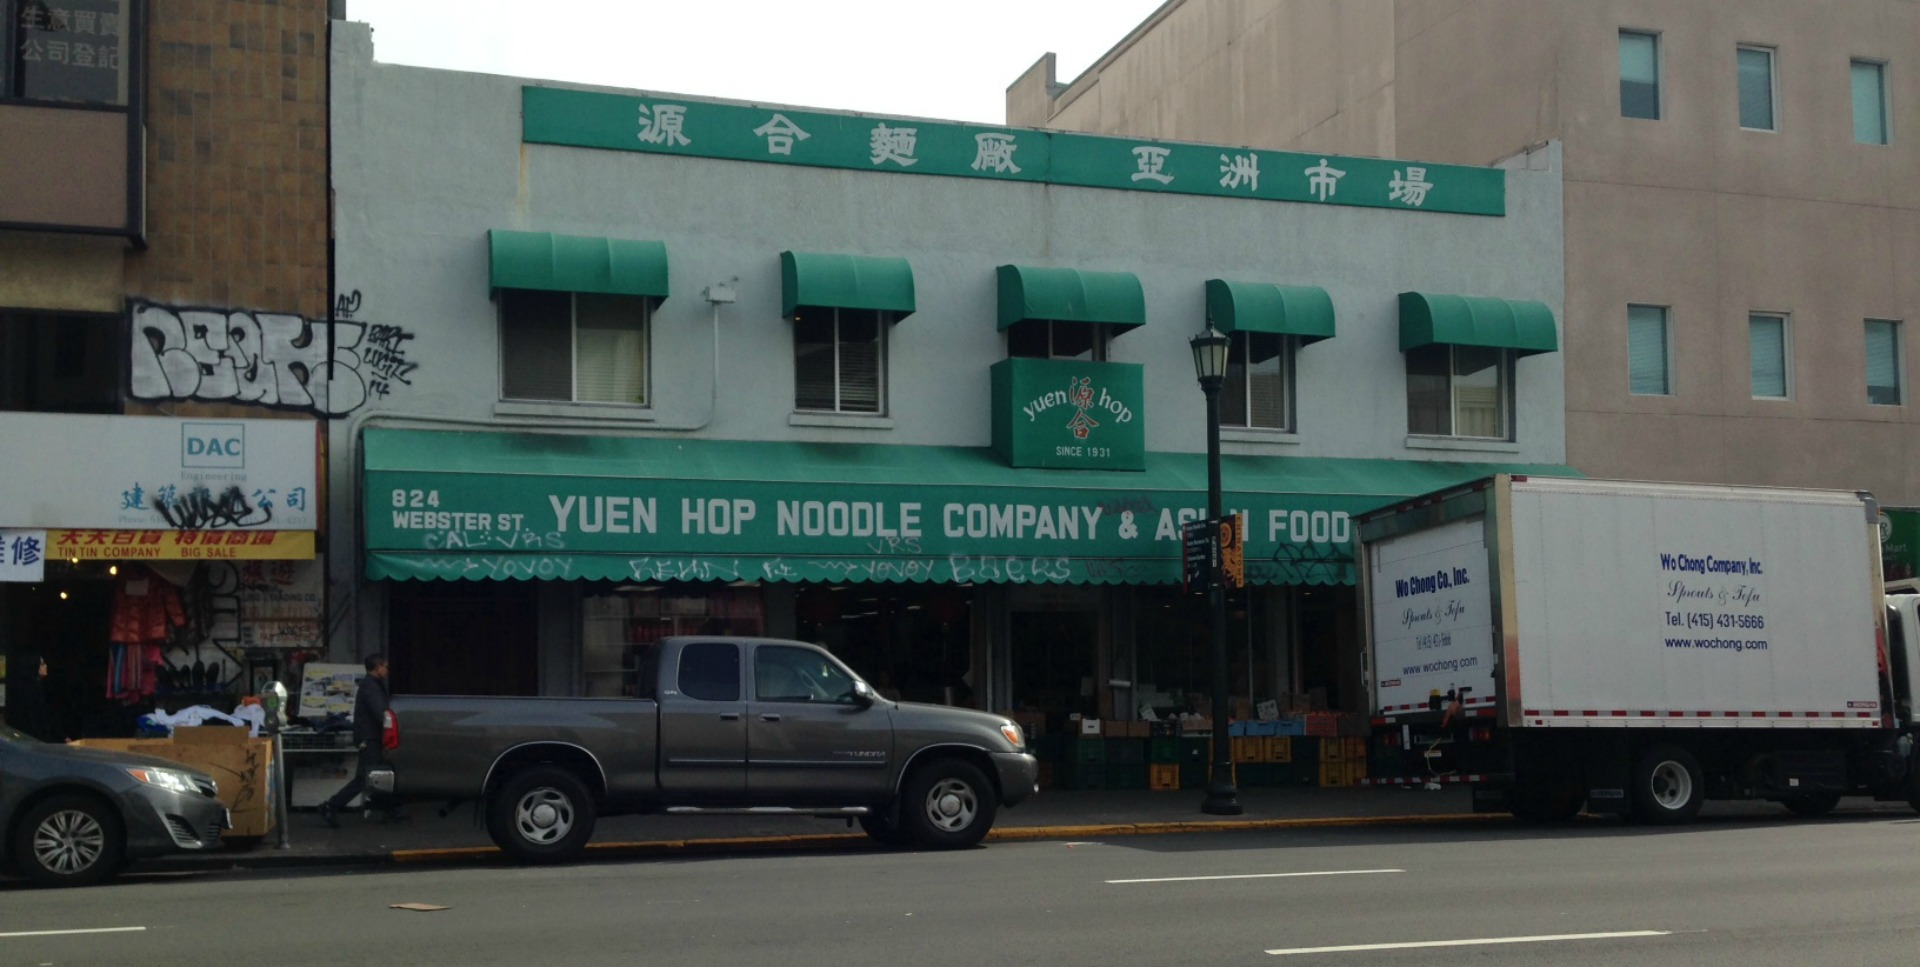 Yuen Hop in Oakland's Chinatown